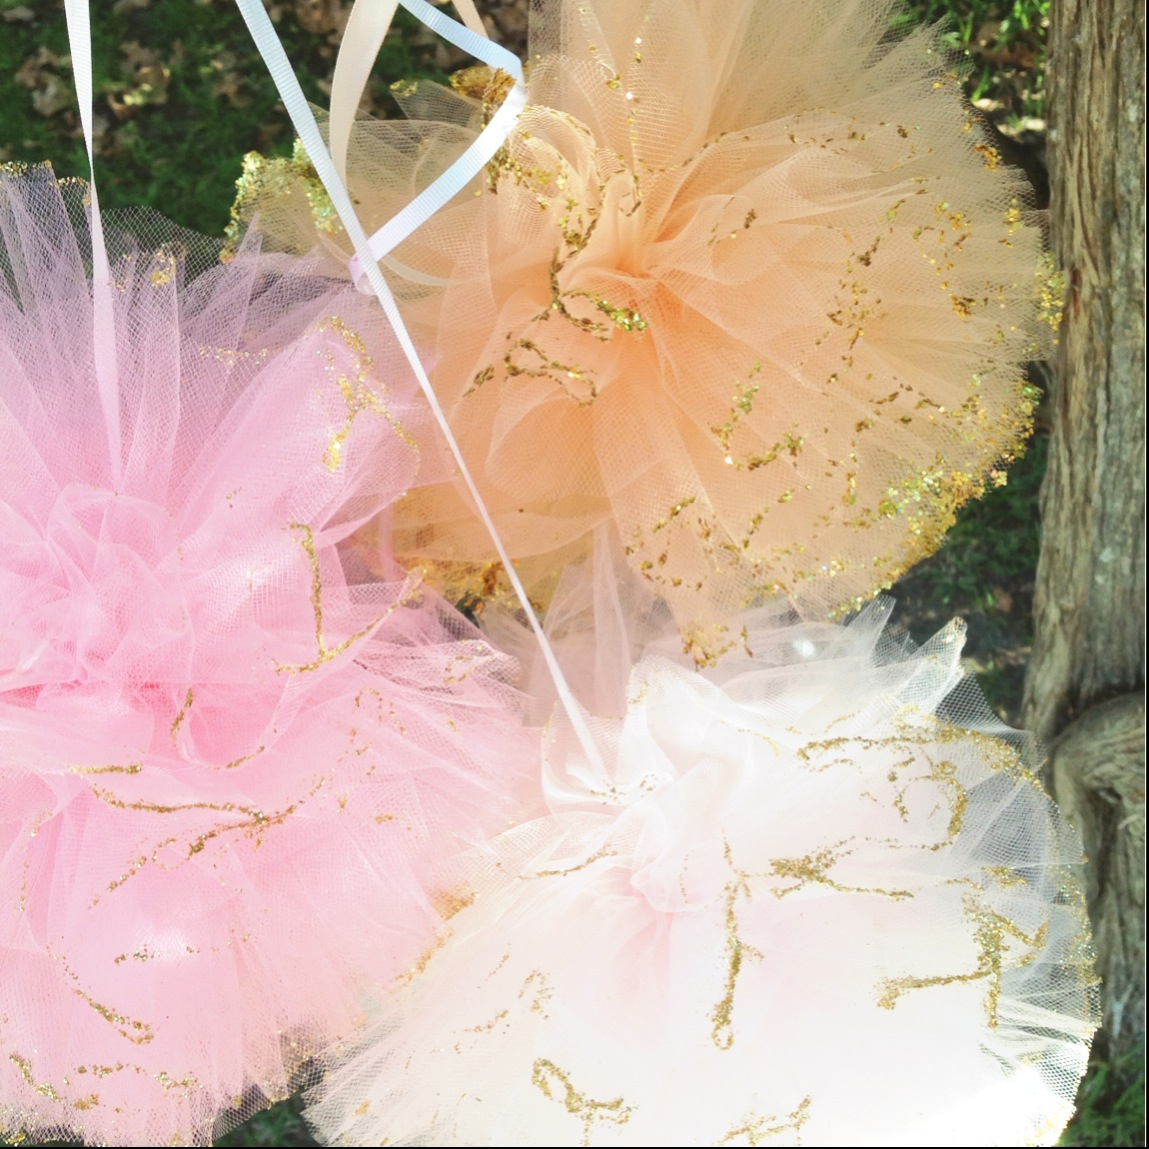 Pair of medium pink or peach tulle poms with glitter - Pom Pom Princess